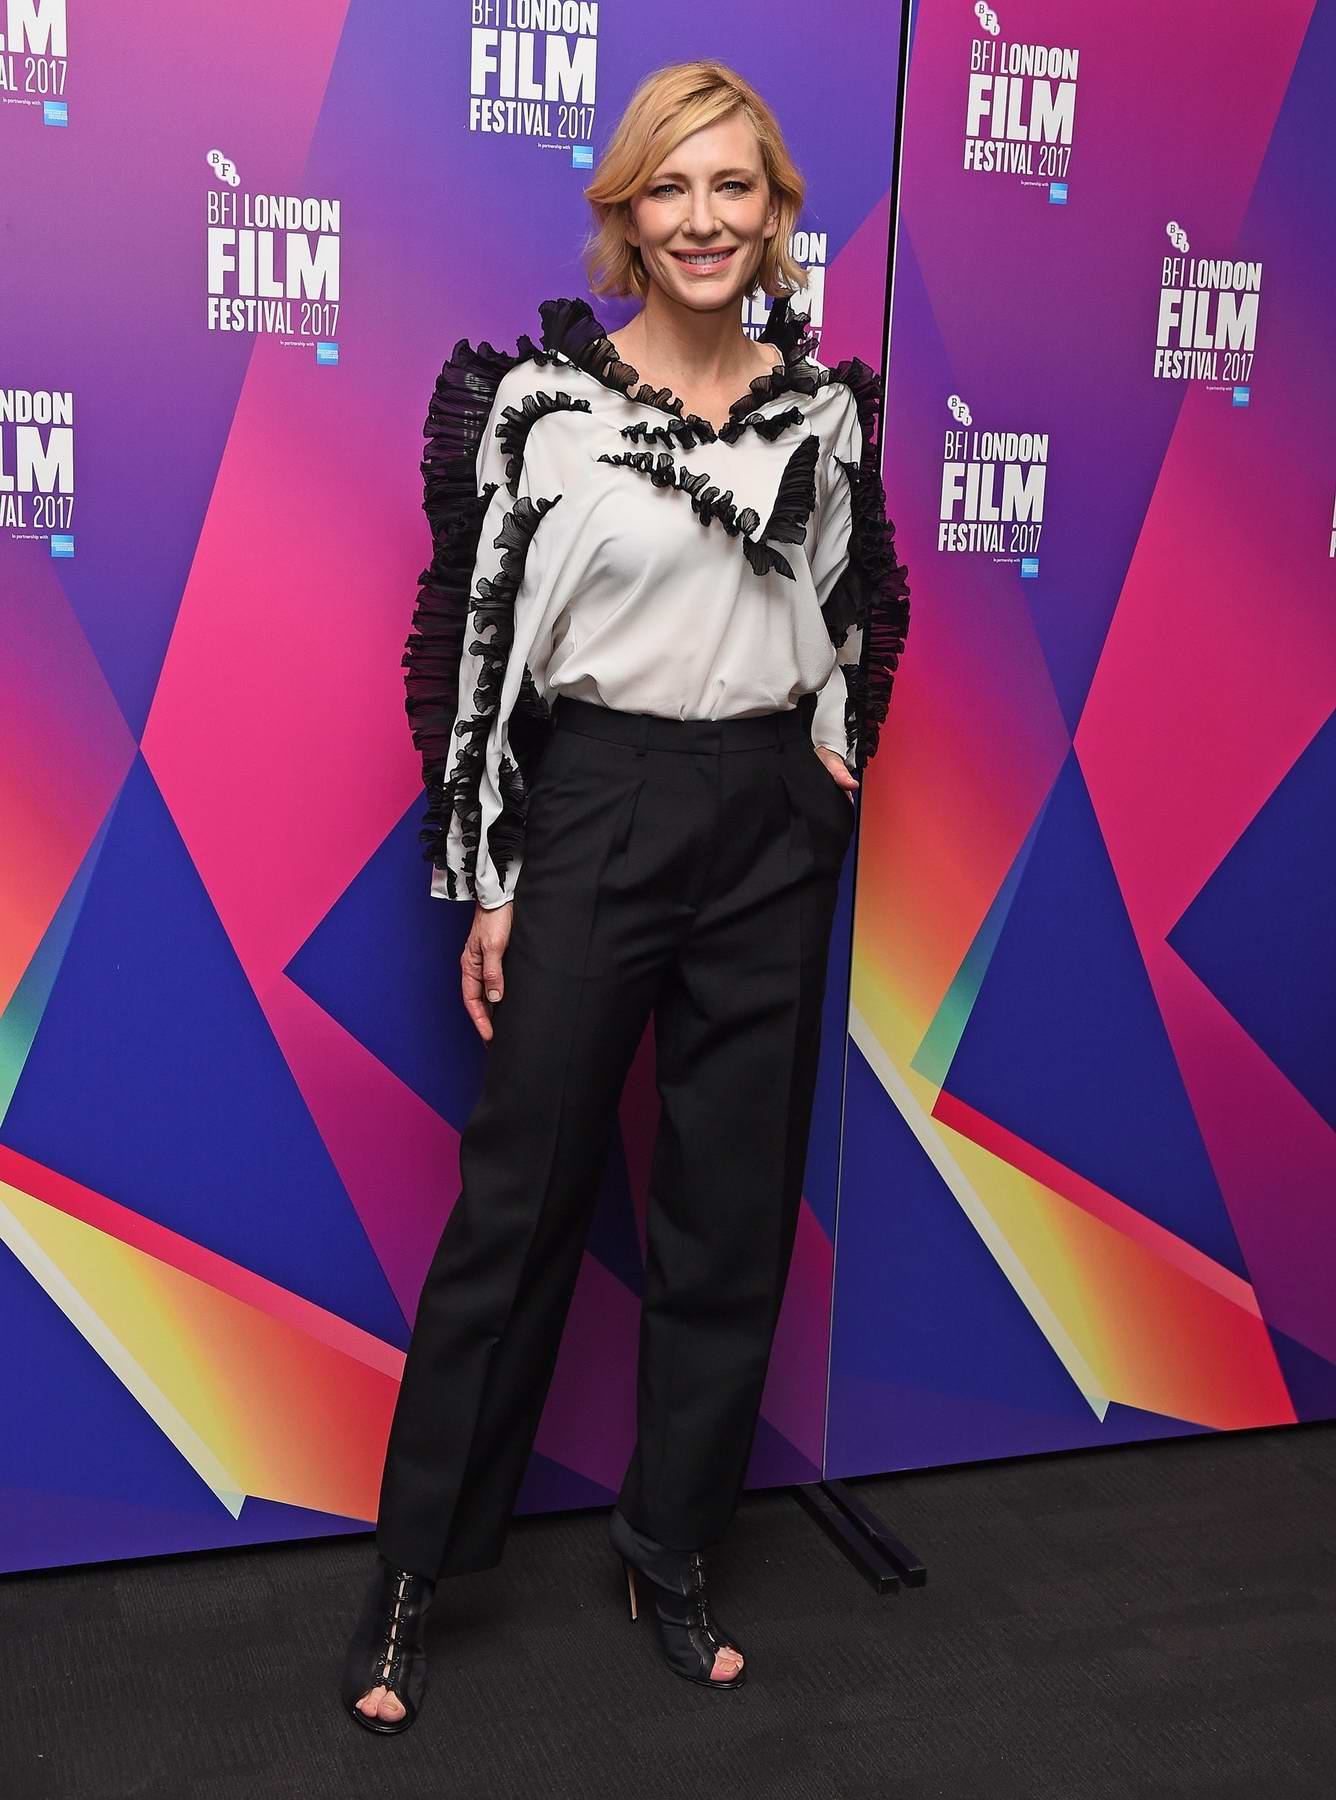 Cate Blanchett at the BFI Southbank in London